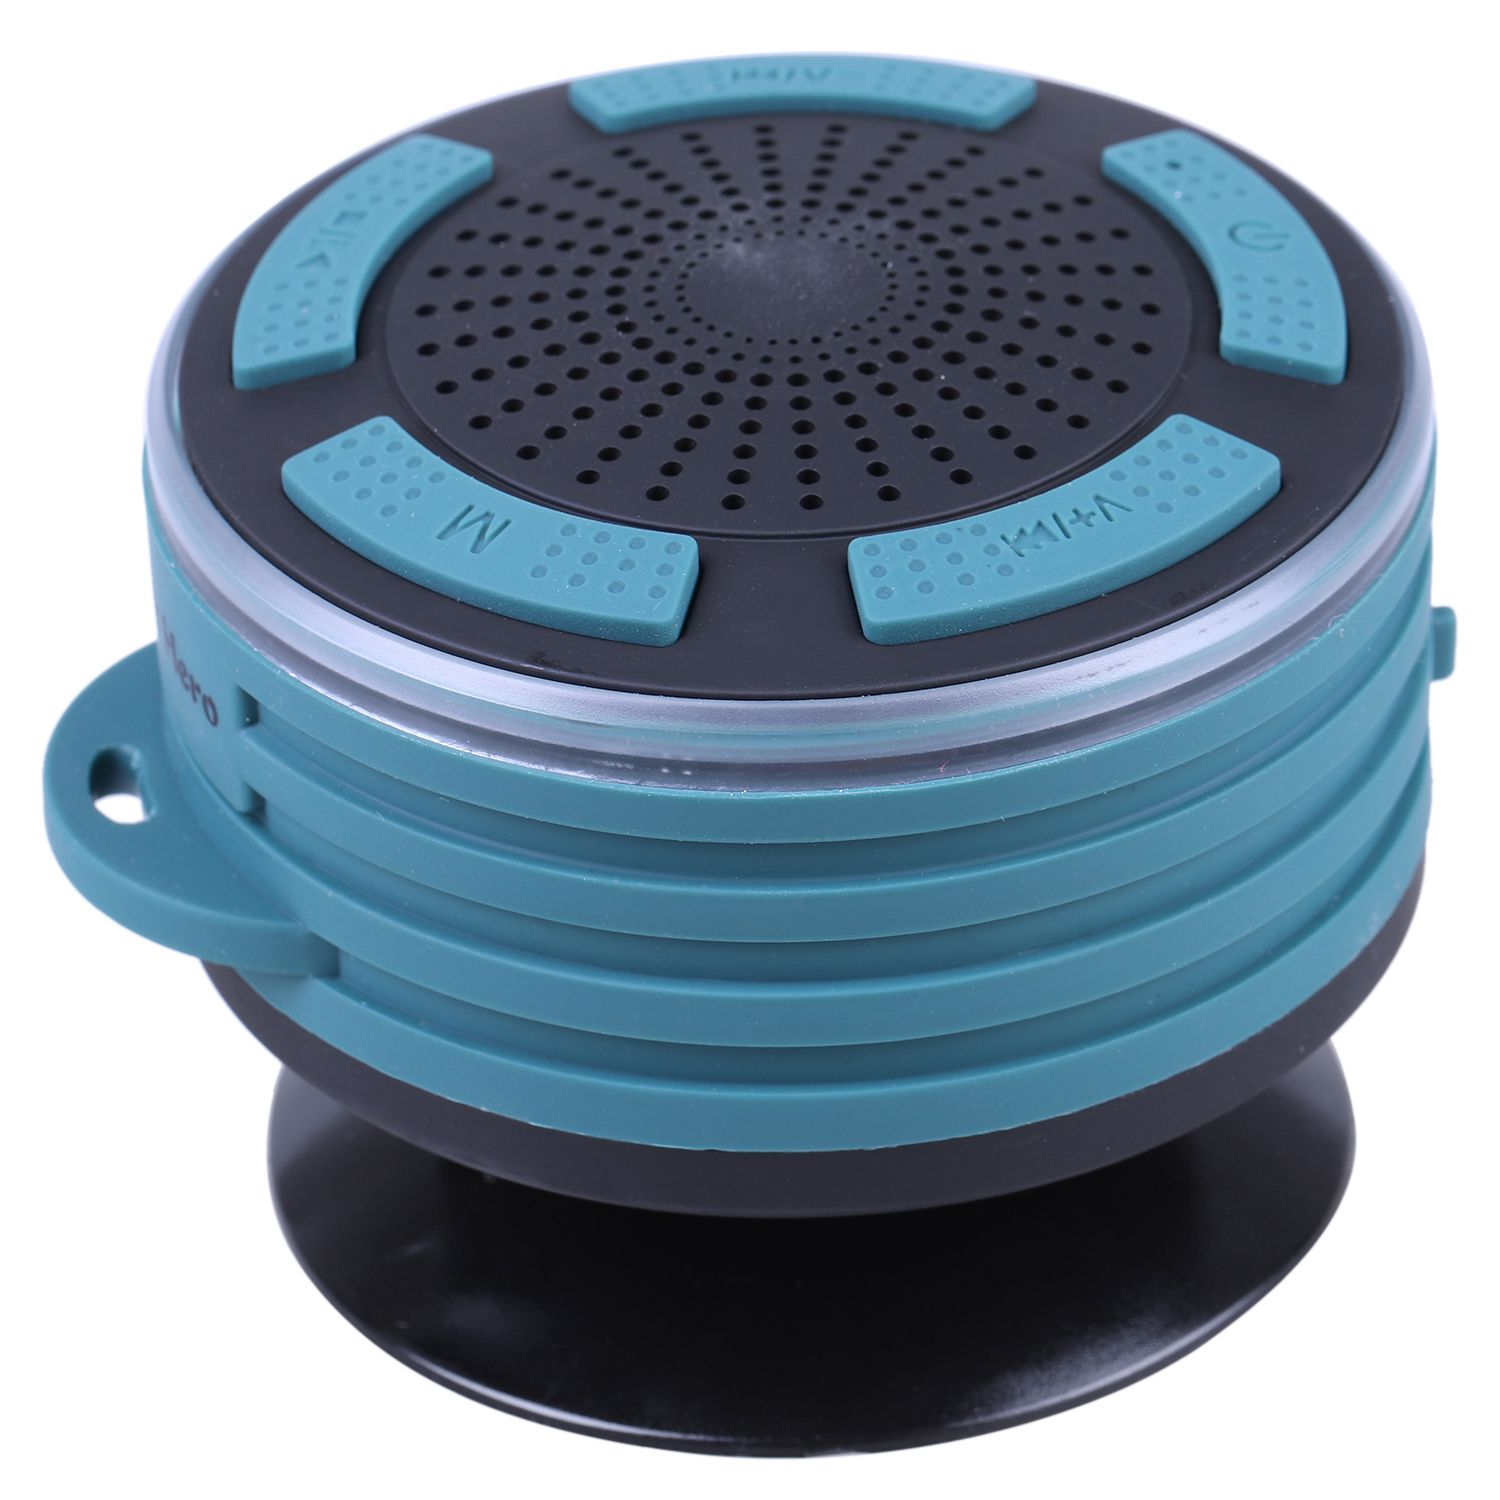 Wireless Waterpoof Bluetooth Speaker Shower Radios with Light,Small Portable Speaker for Bathroom,Outdoor,Car,Beach,Pool